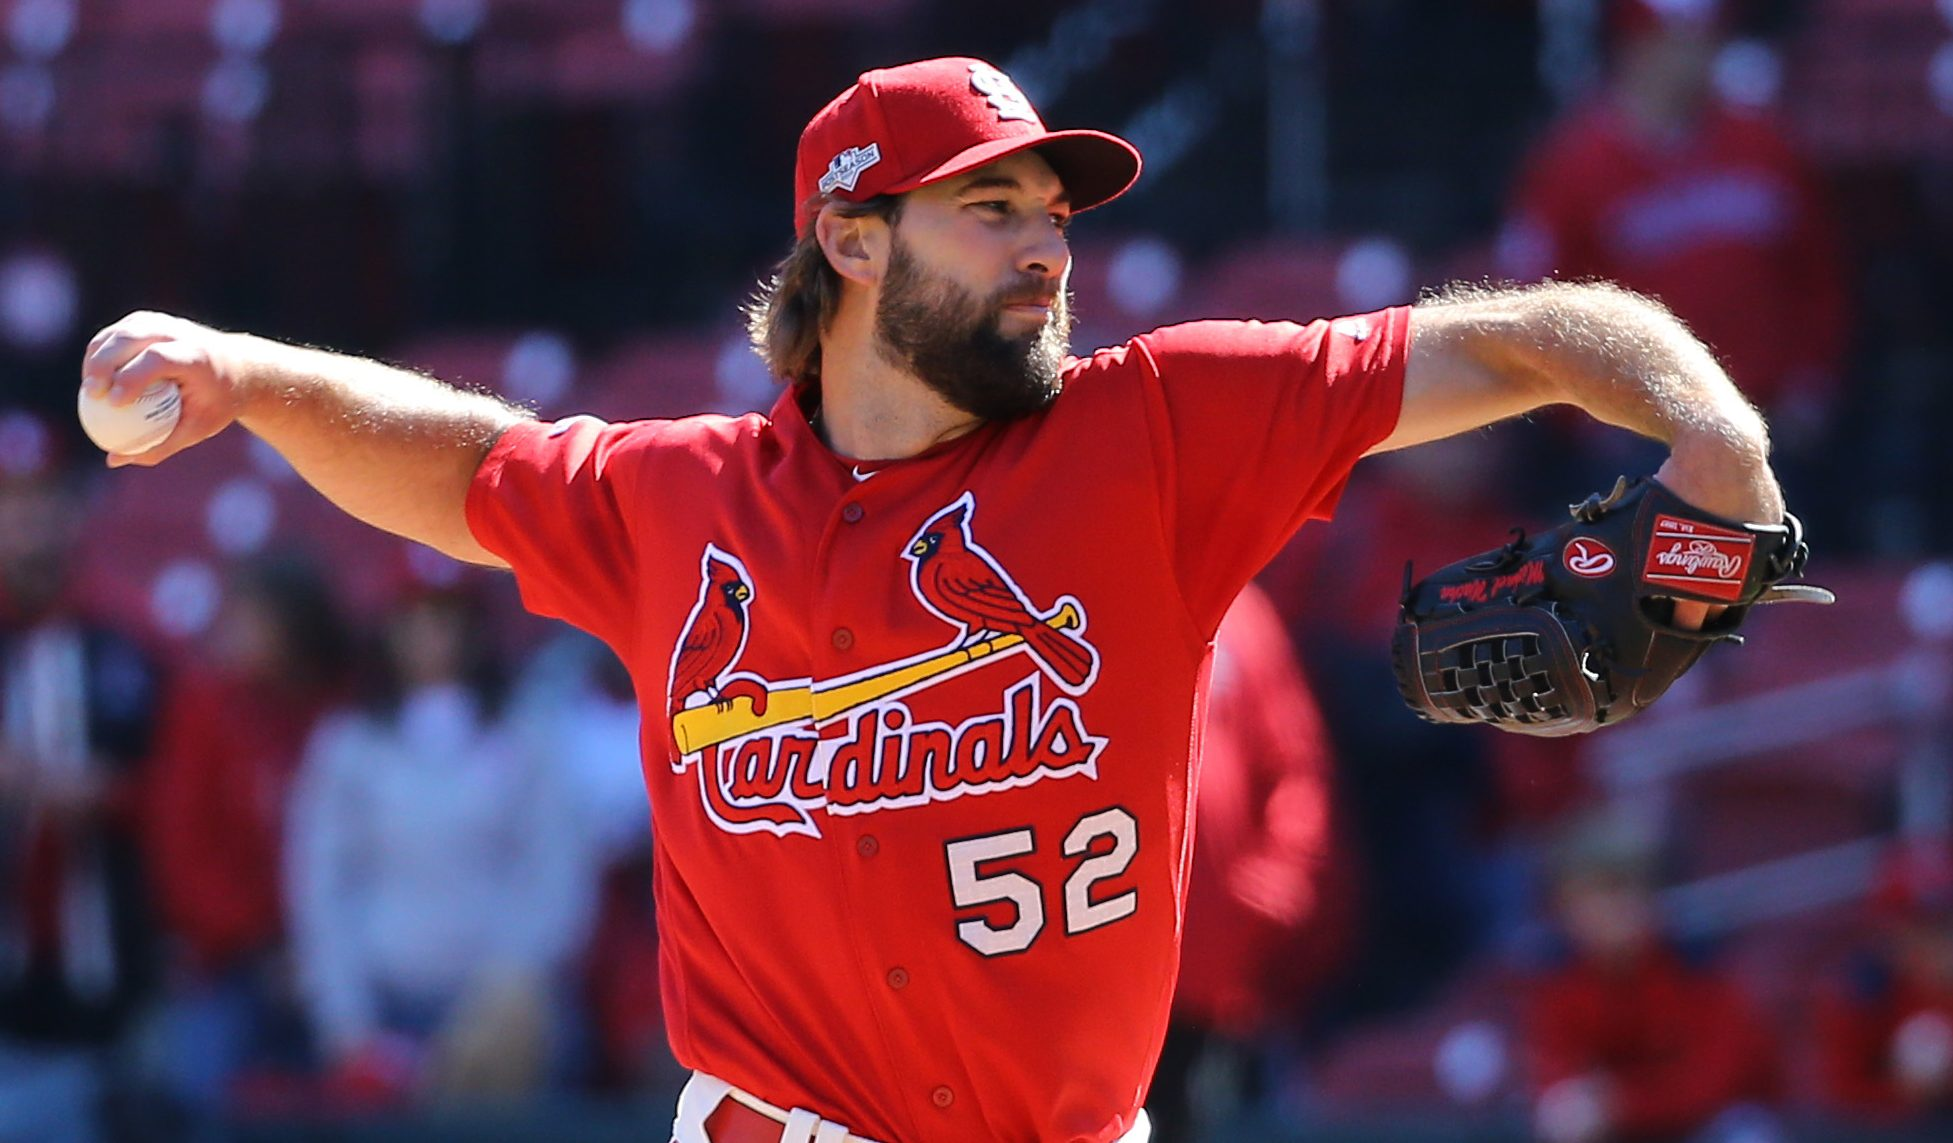 Mets are finalizing a one-year deal for Michael Wacha